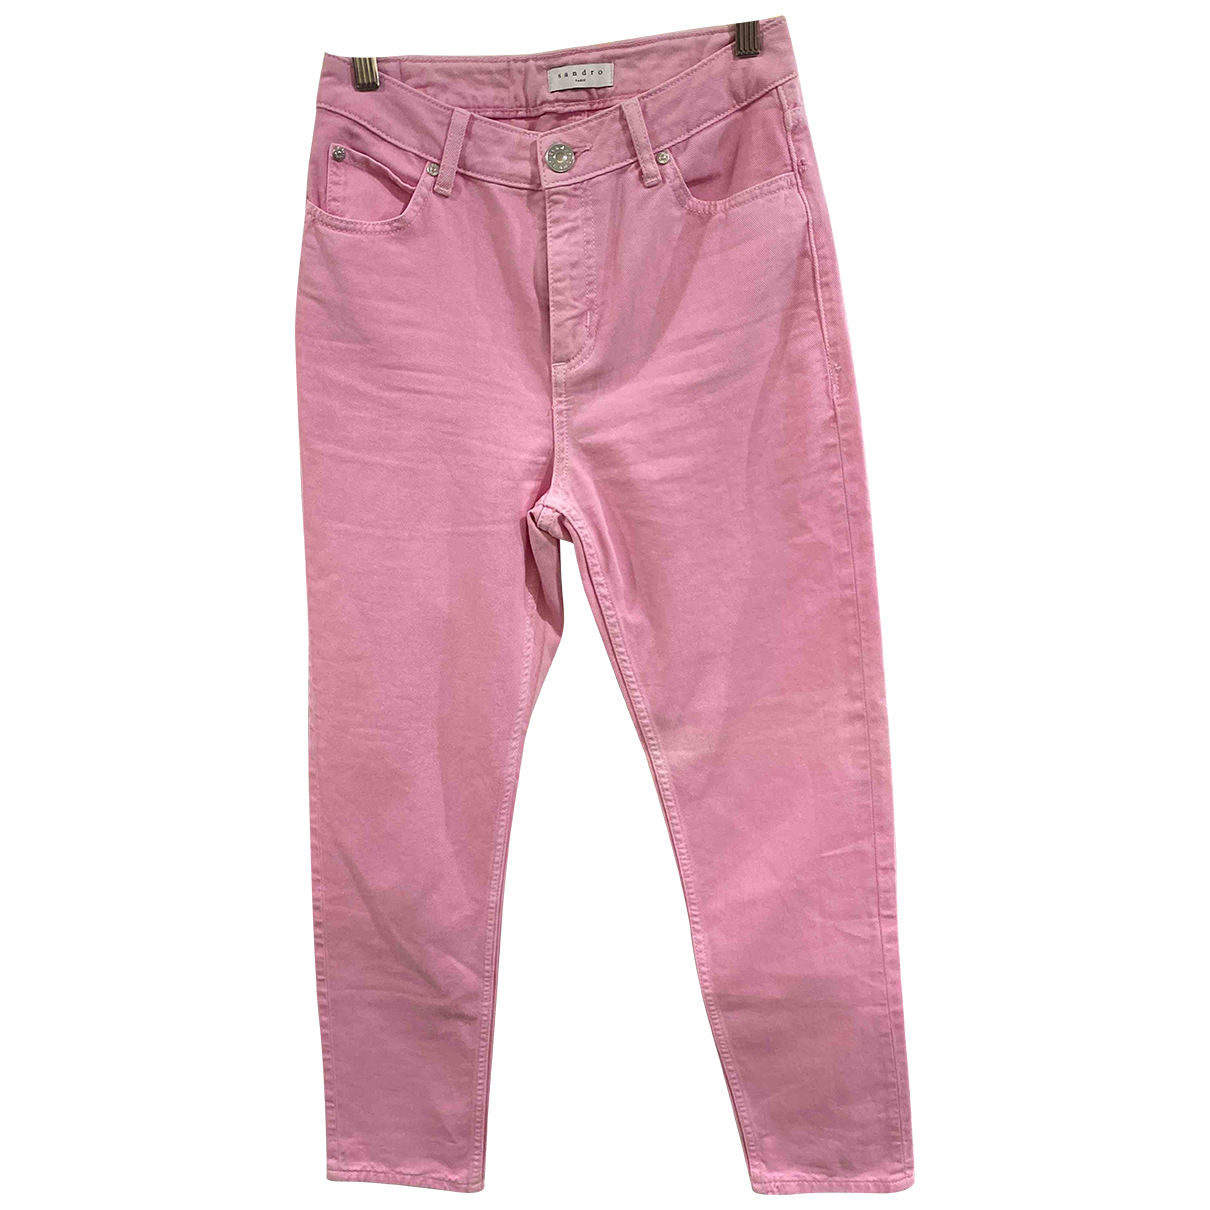 Sandro N Pink Cotton Jeans for Women 36 FR